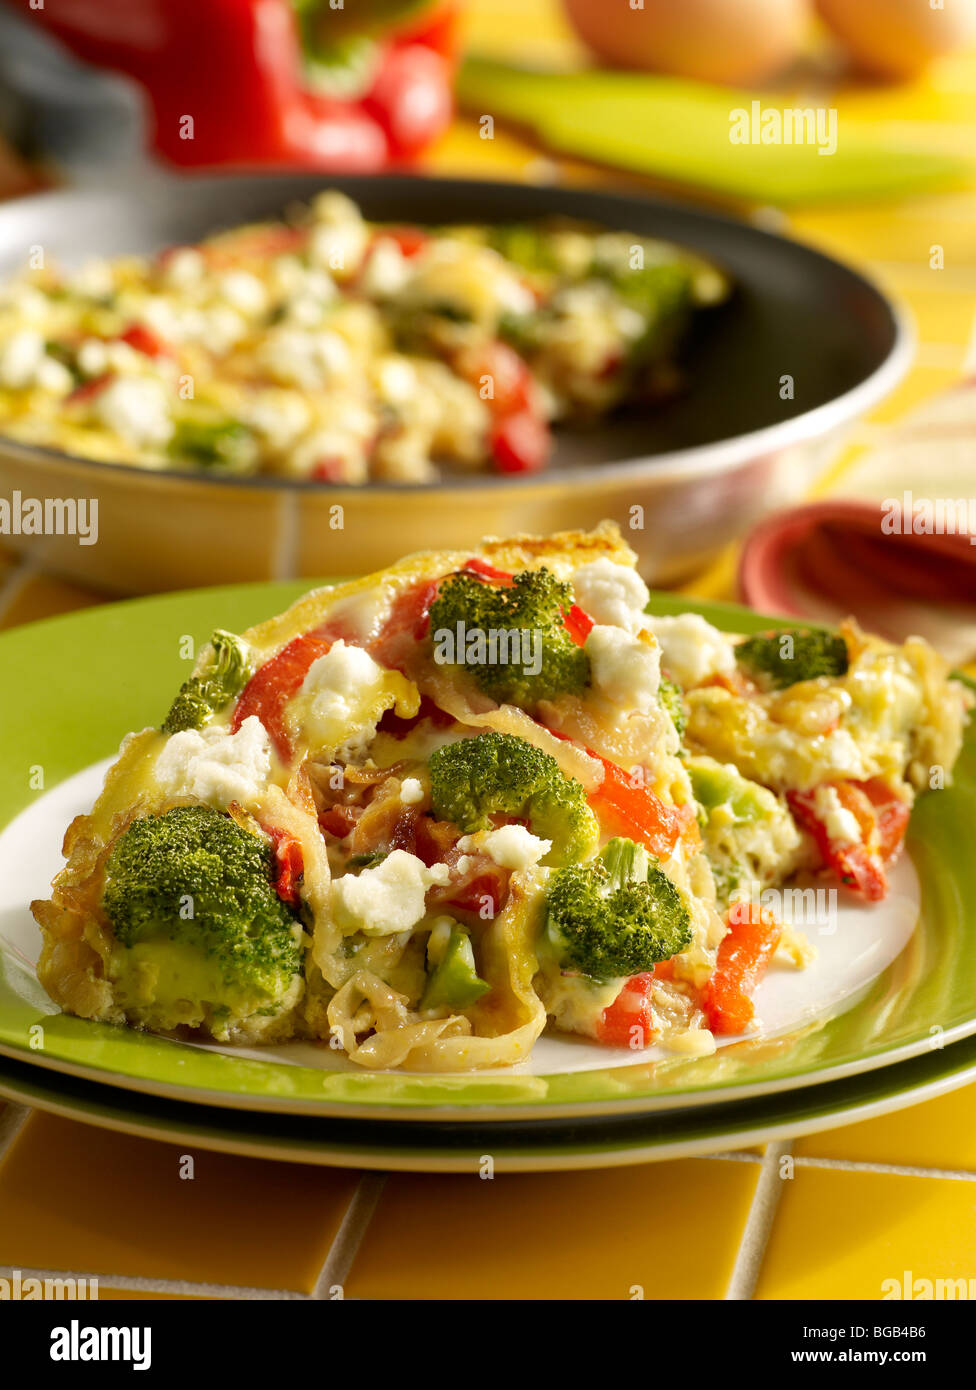 Caramelized onion, red pepper and broccoli frittata - Stock Image